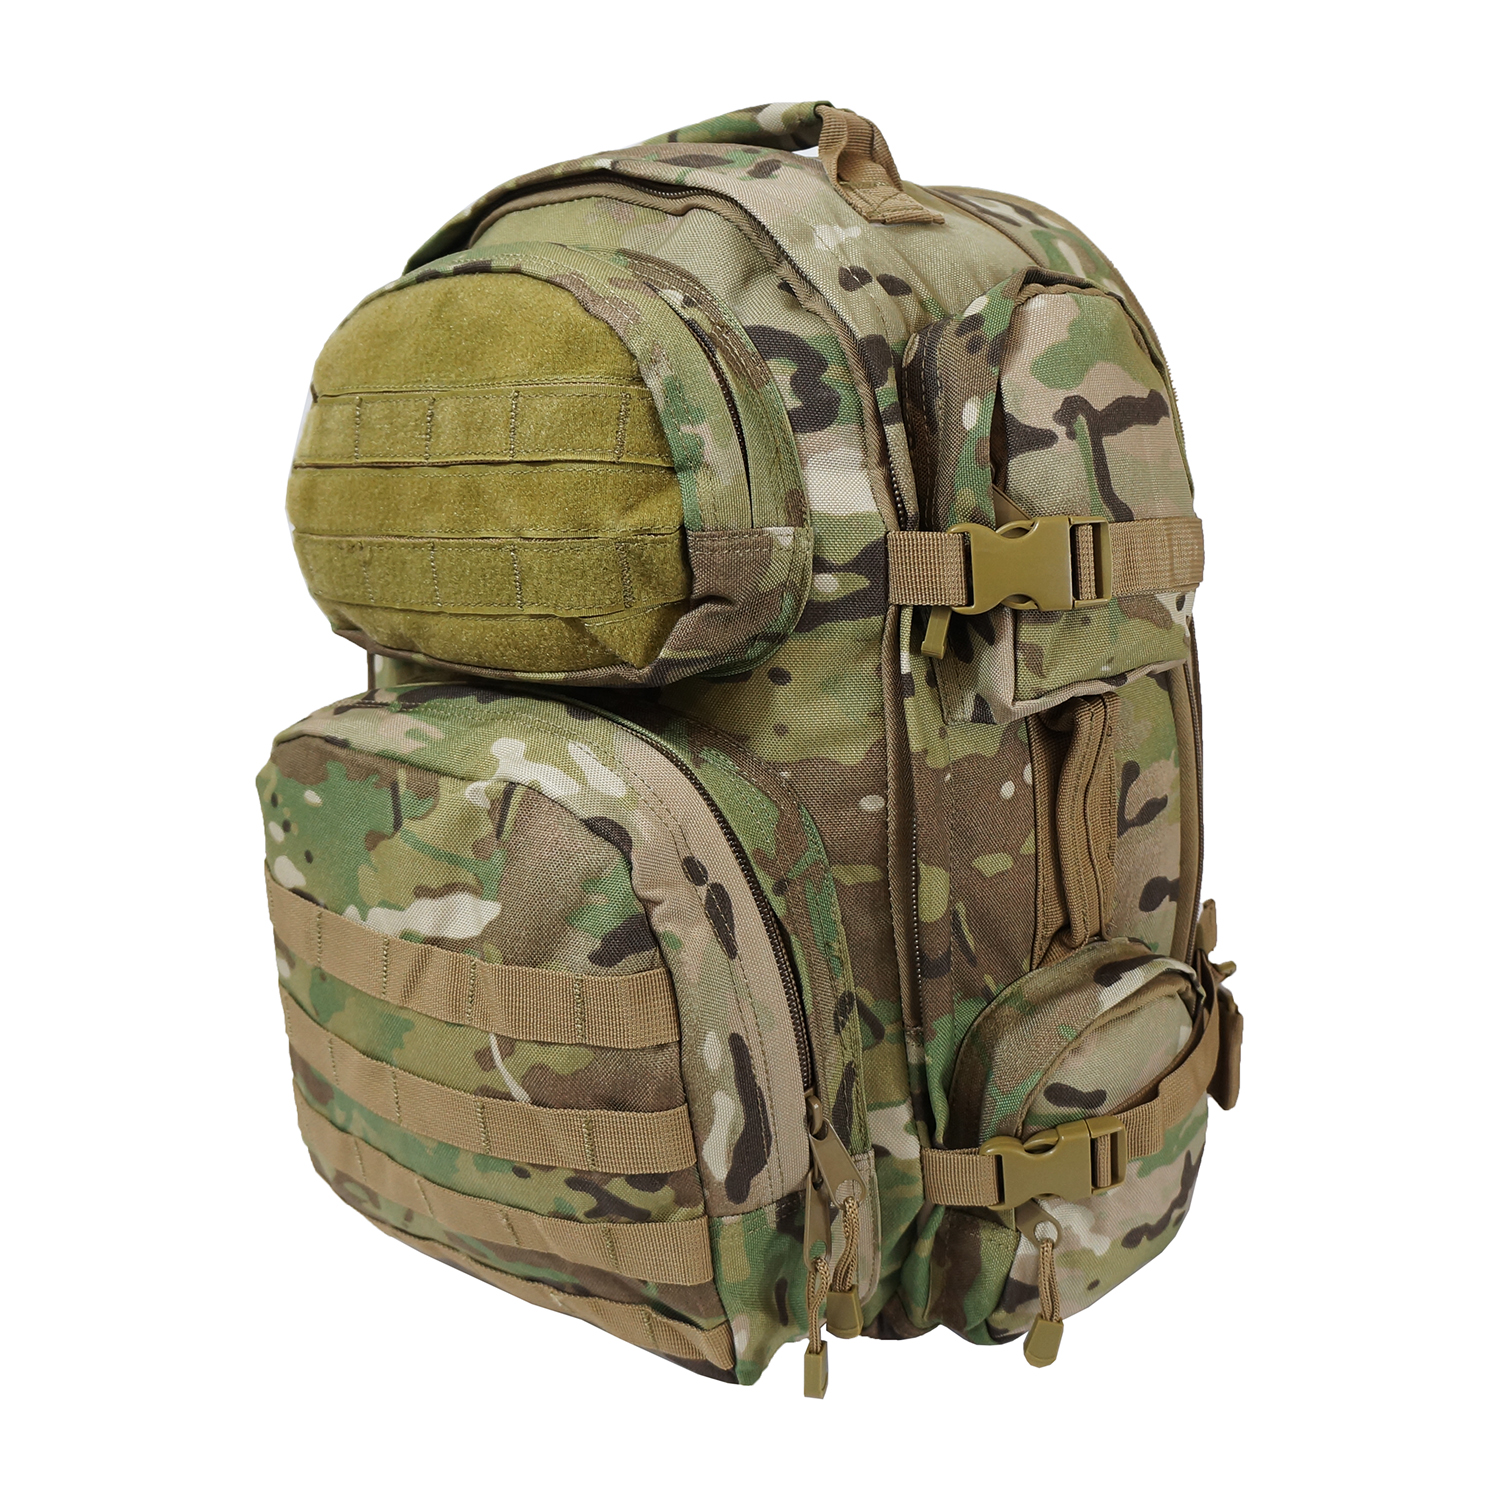 e71395efa1e7 Details about Every Day Carry B5 MULTICAM 3-Day Expandable Tactical Backpack  w  Molle Webbing